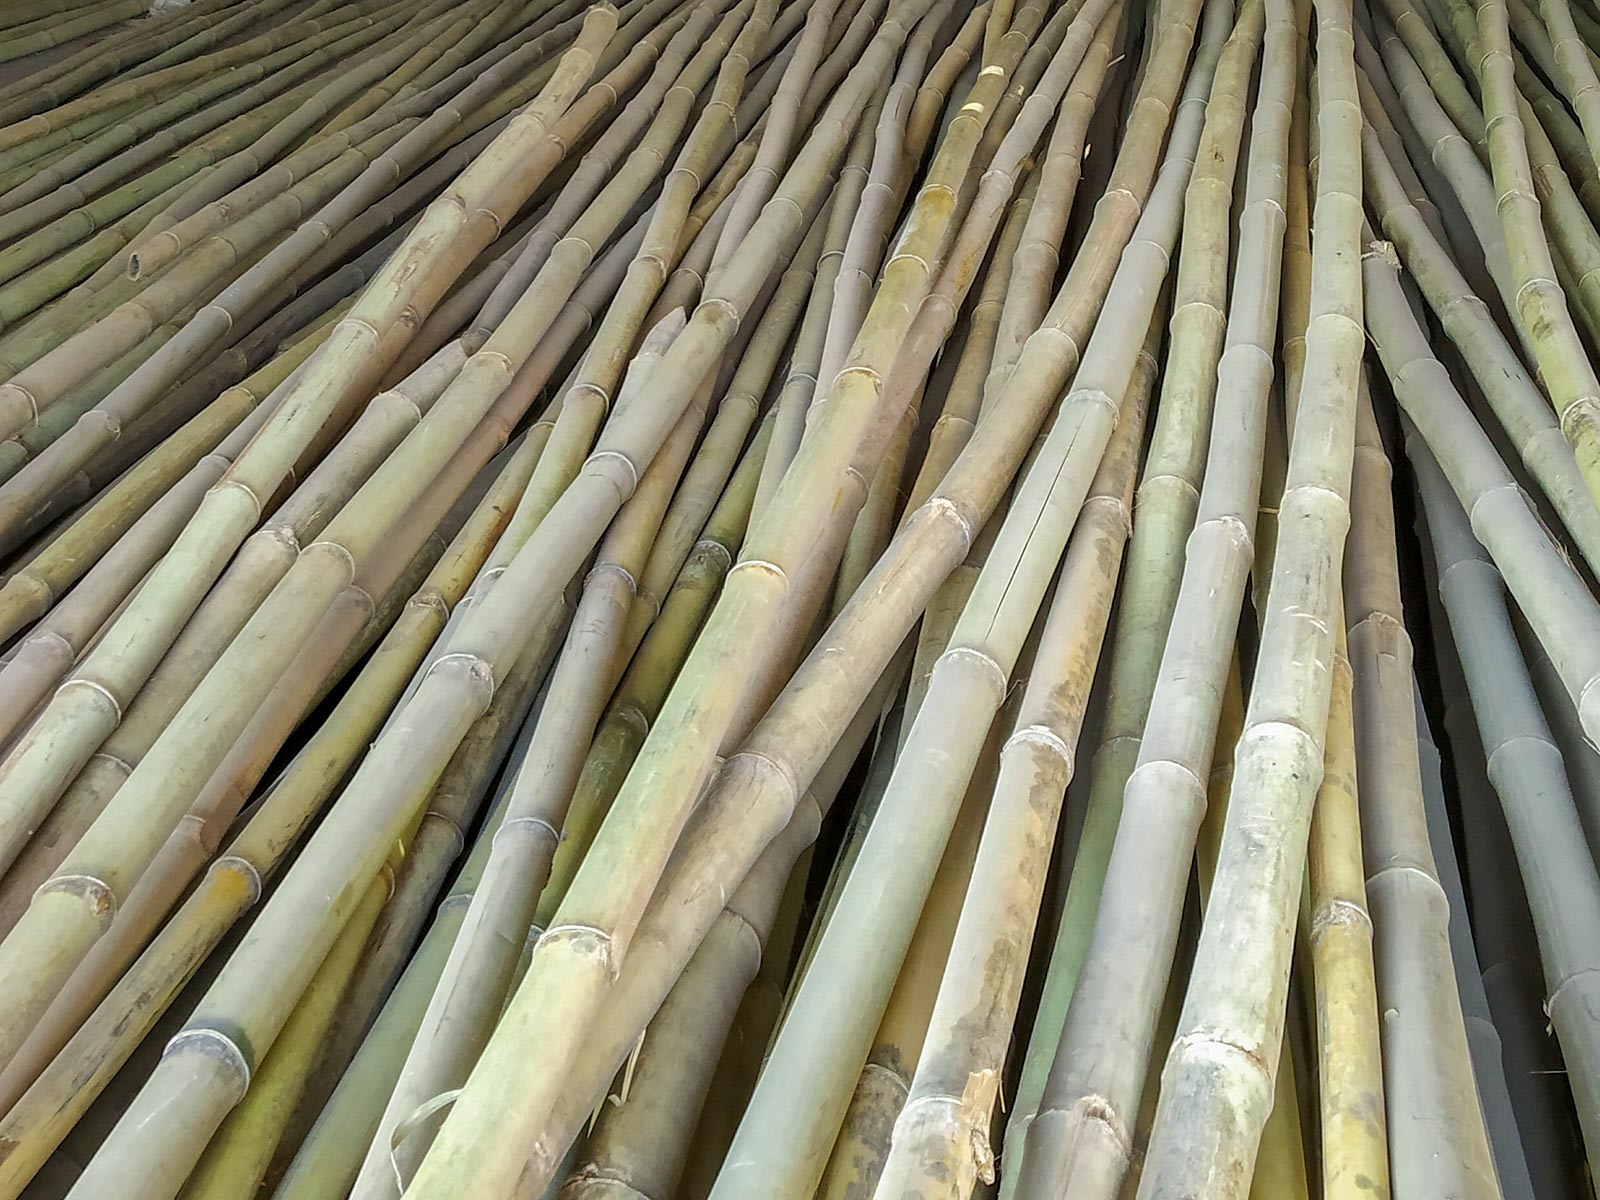 indian bamboo at market